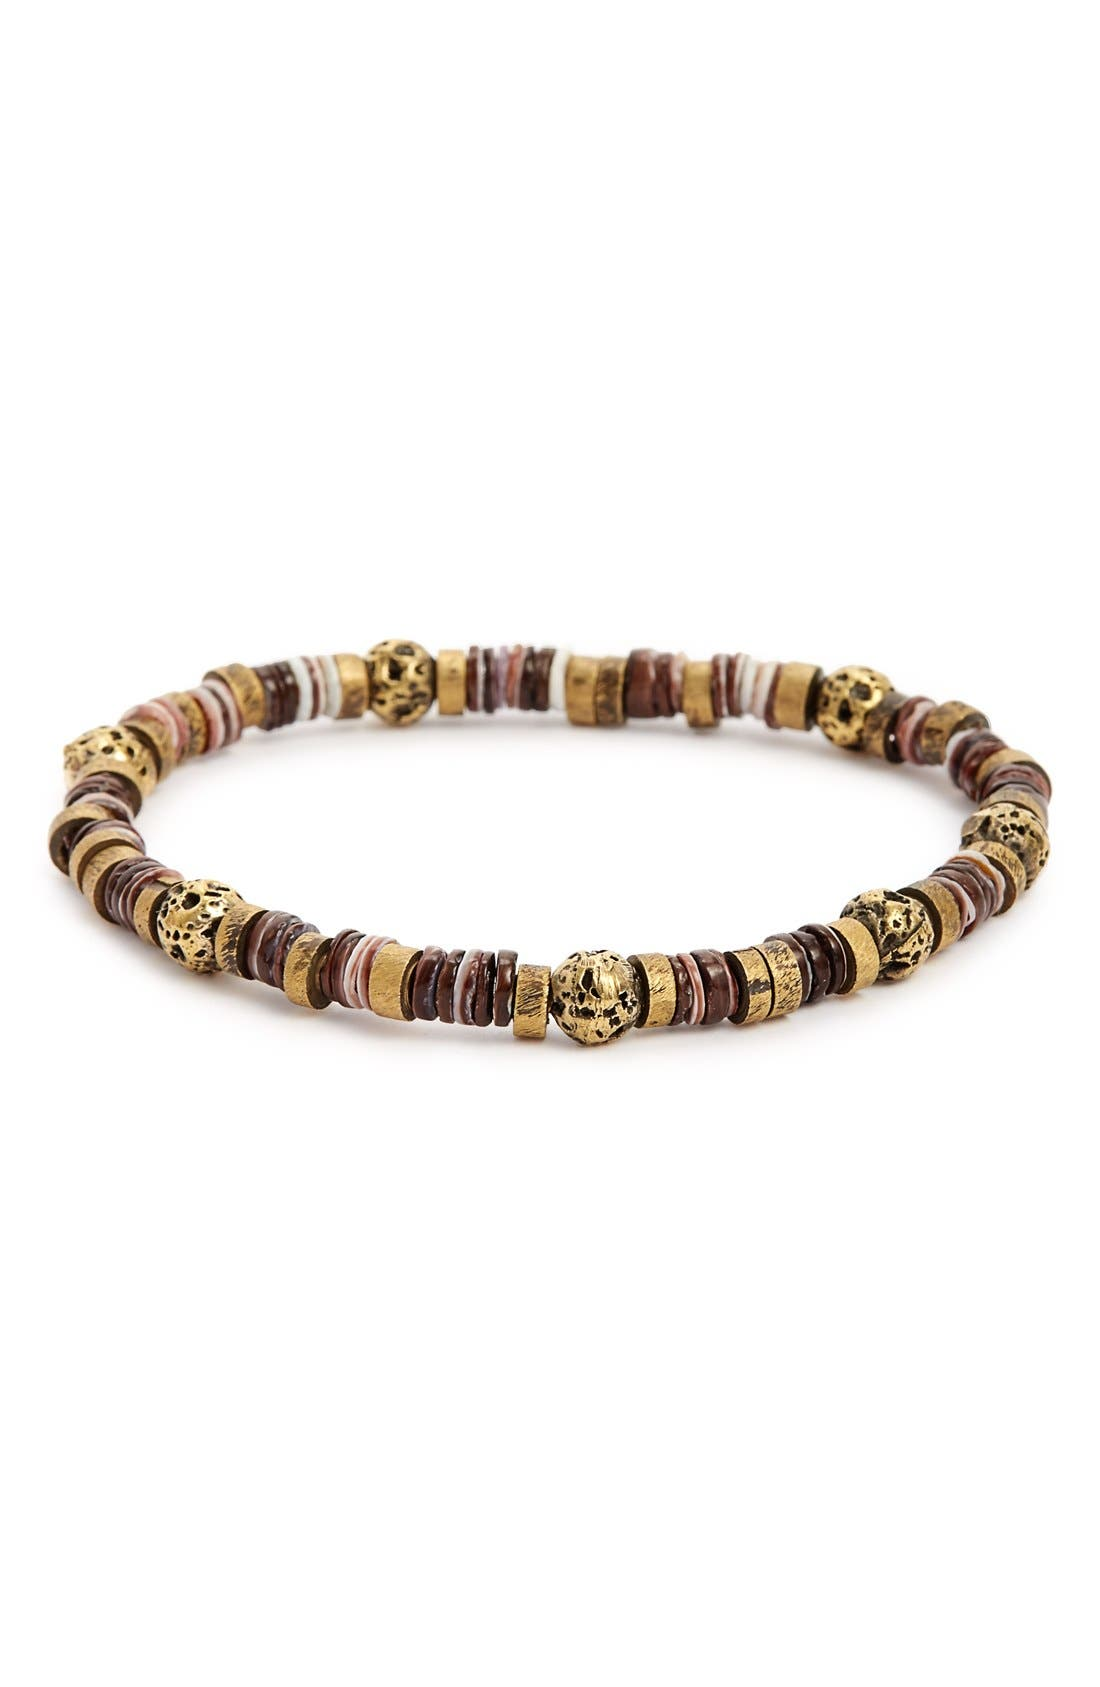 Lava Rock & Brass Bead Bracelet,                             Main thumbnail 1, color,                             Brown